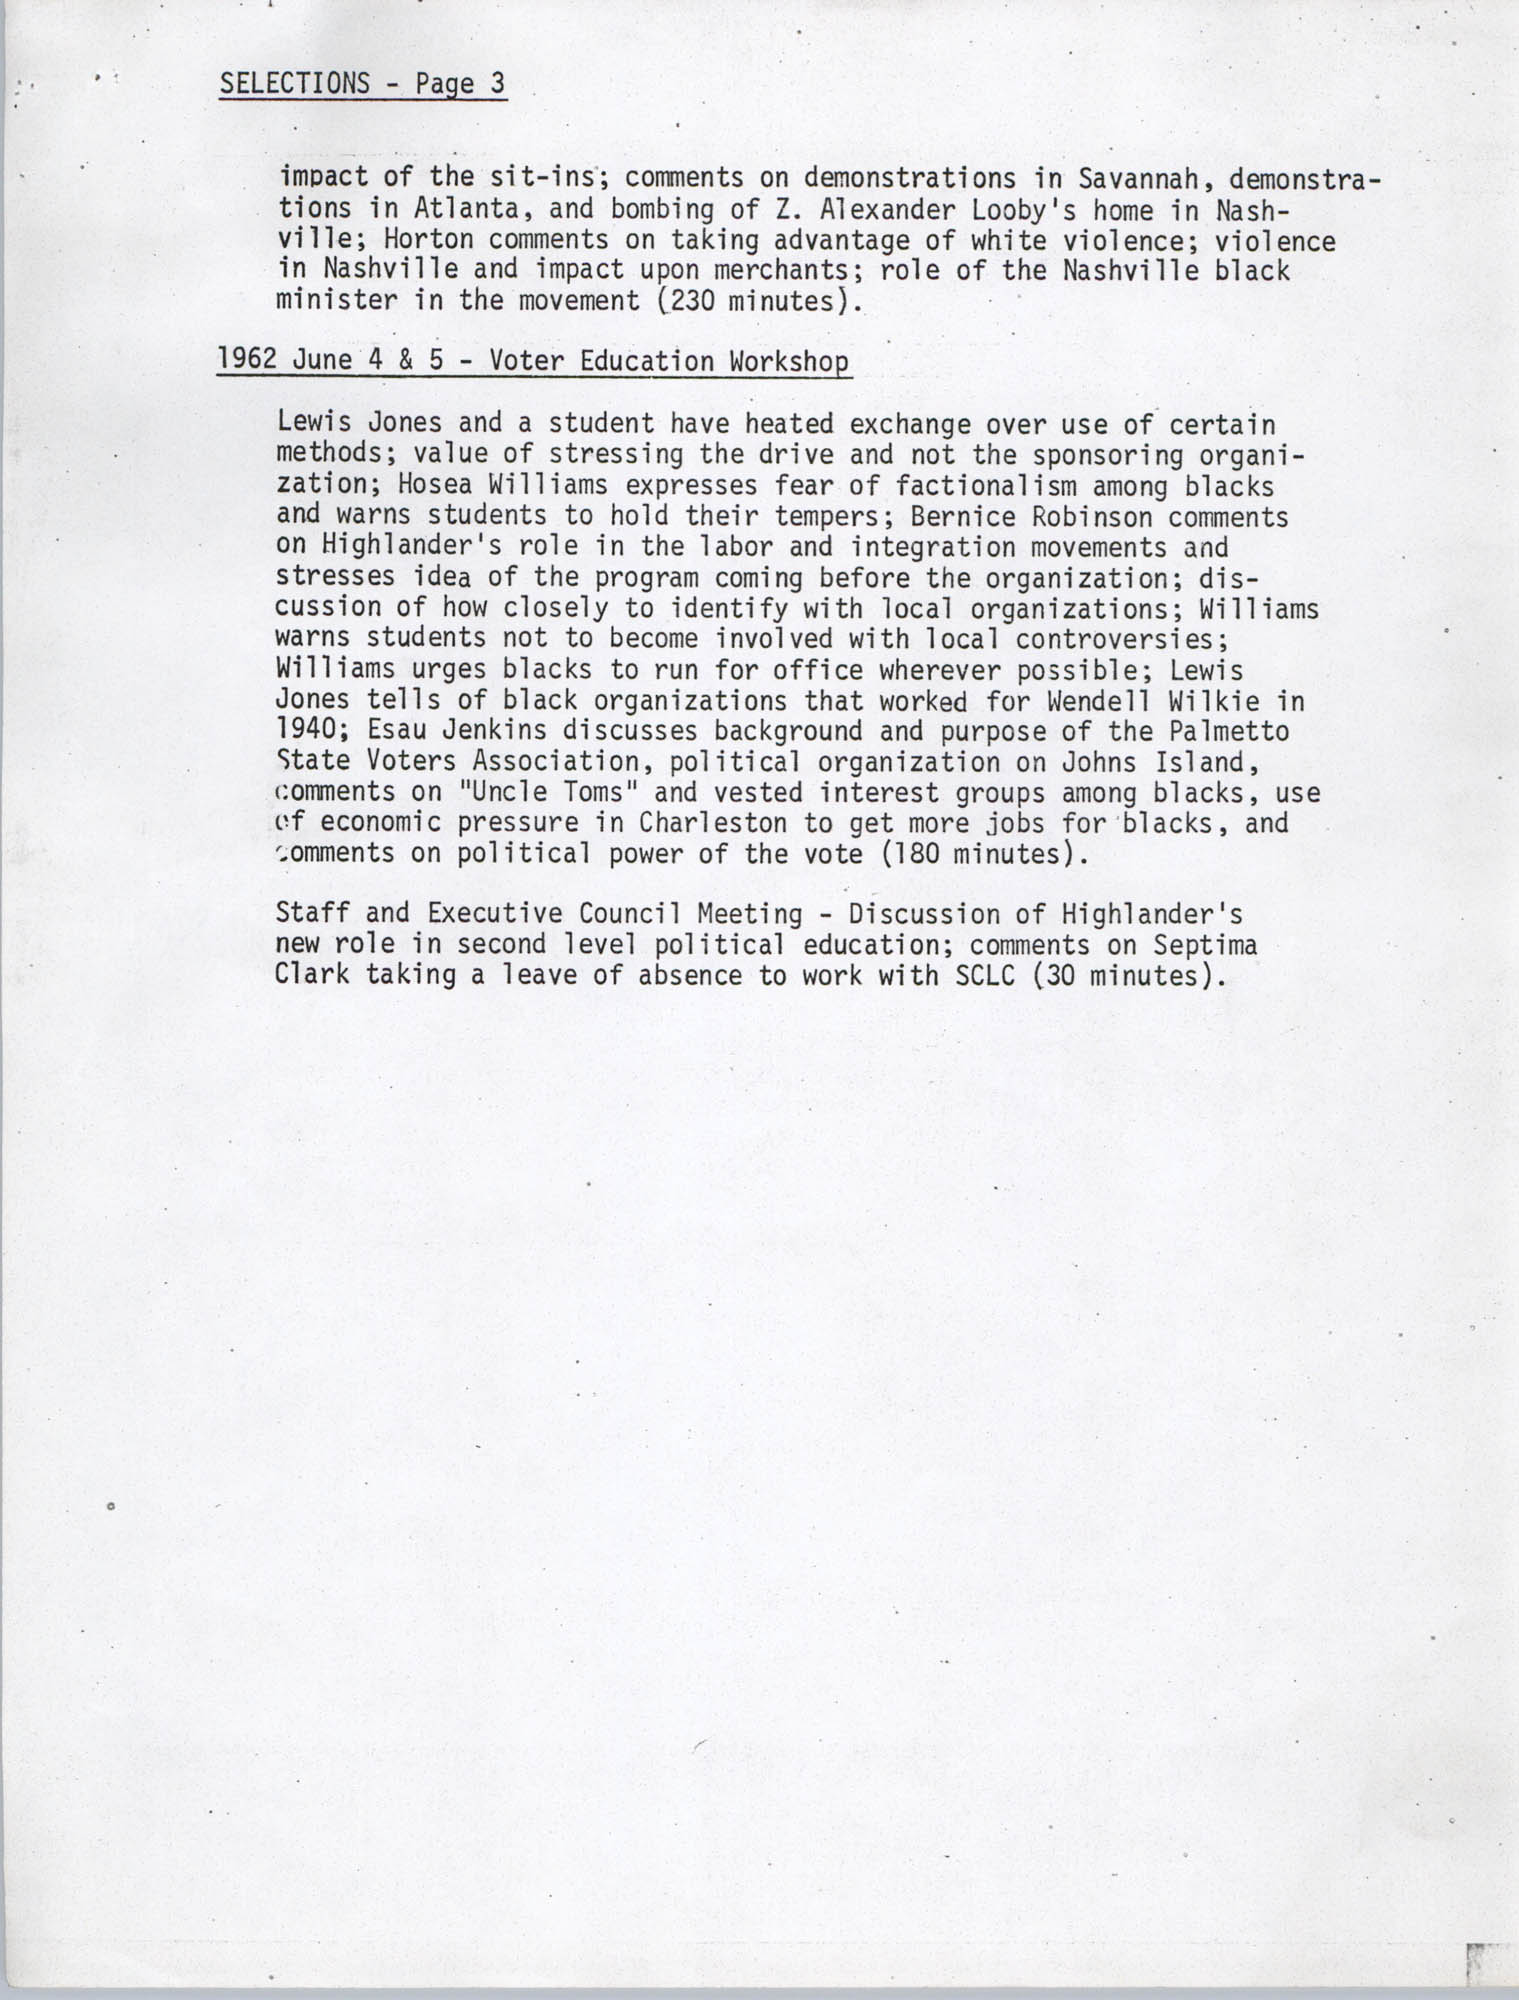 Civil Rights Movement Oral History Project, Foxfire Learning Concept, Appendix B, Page 3